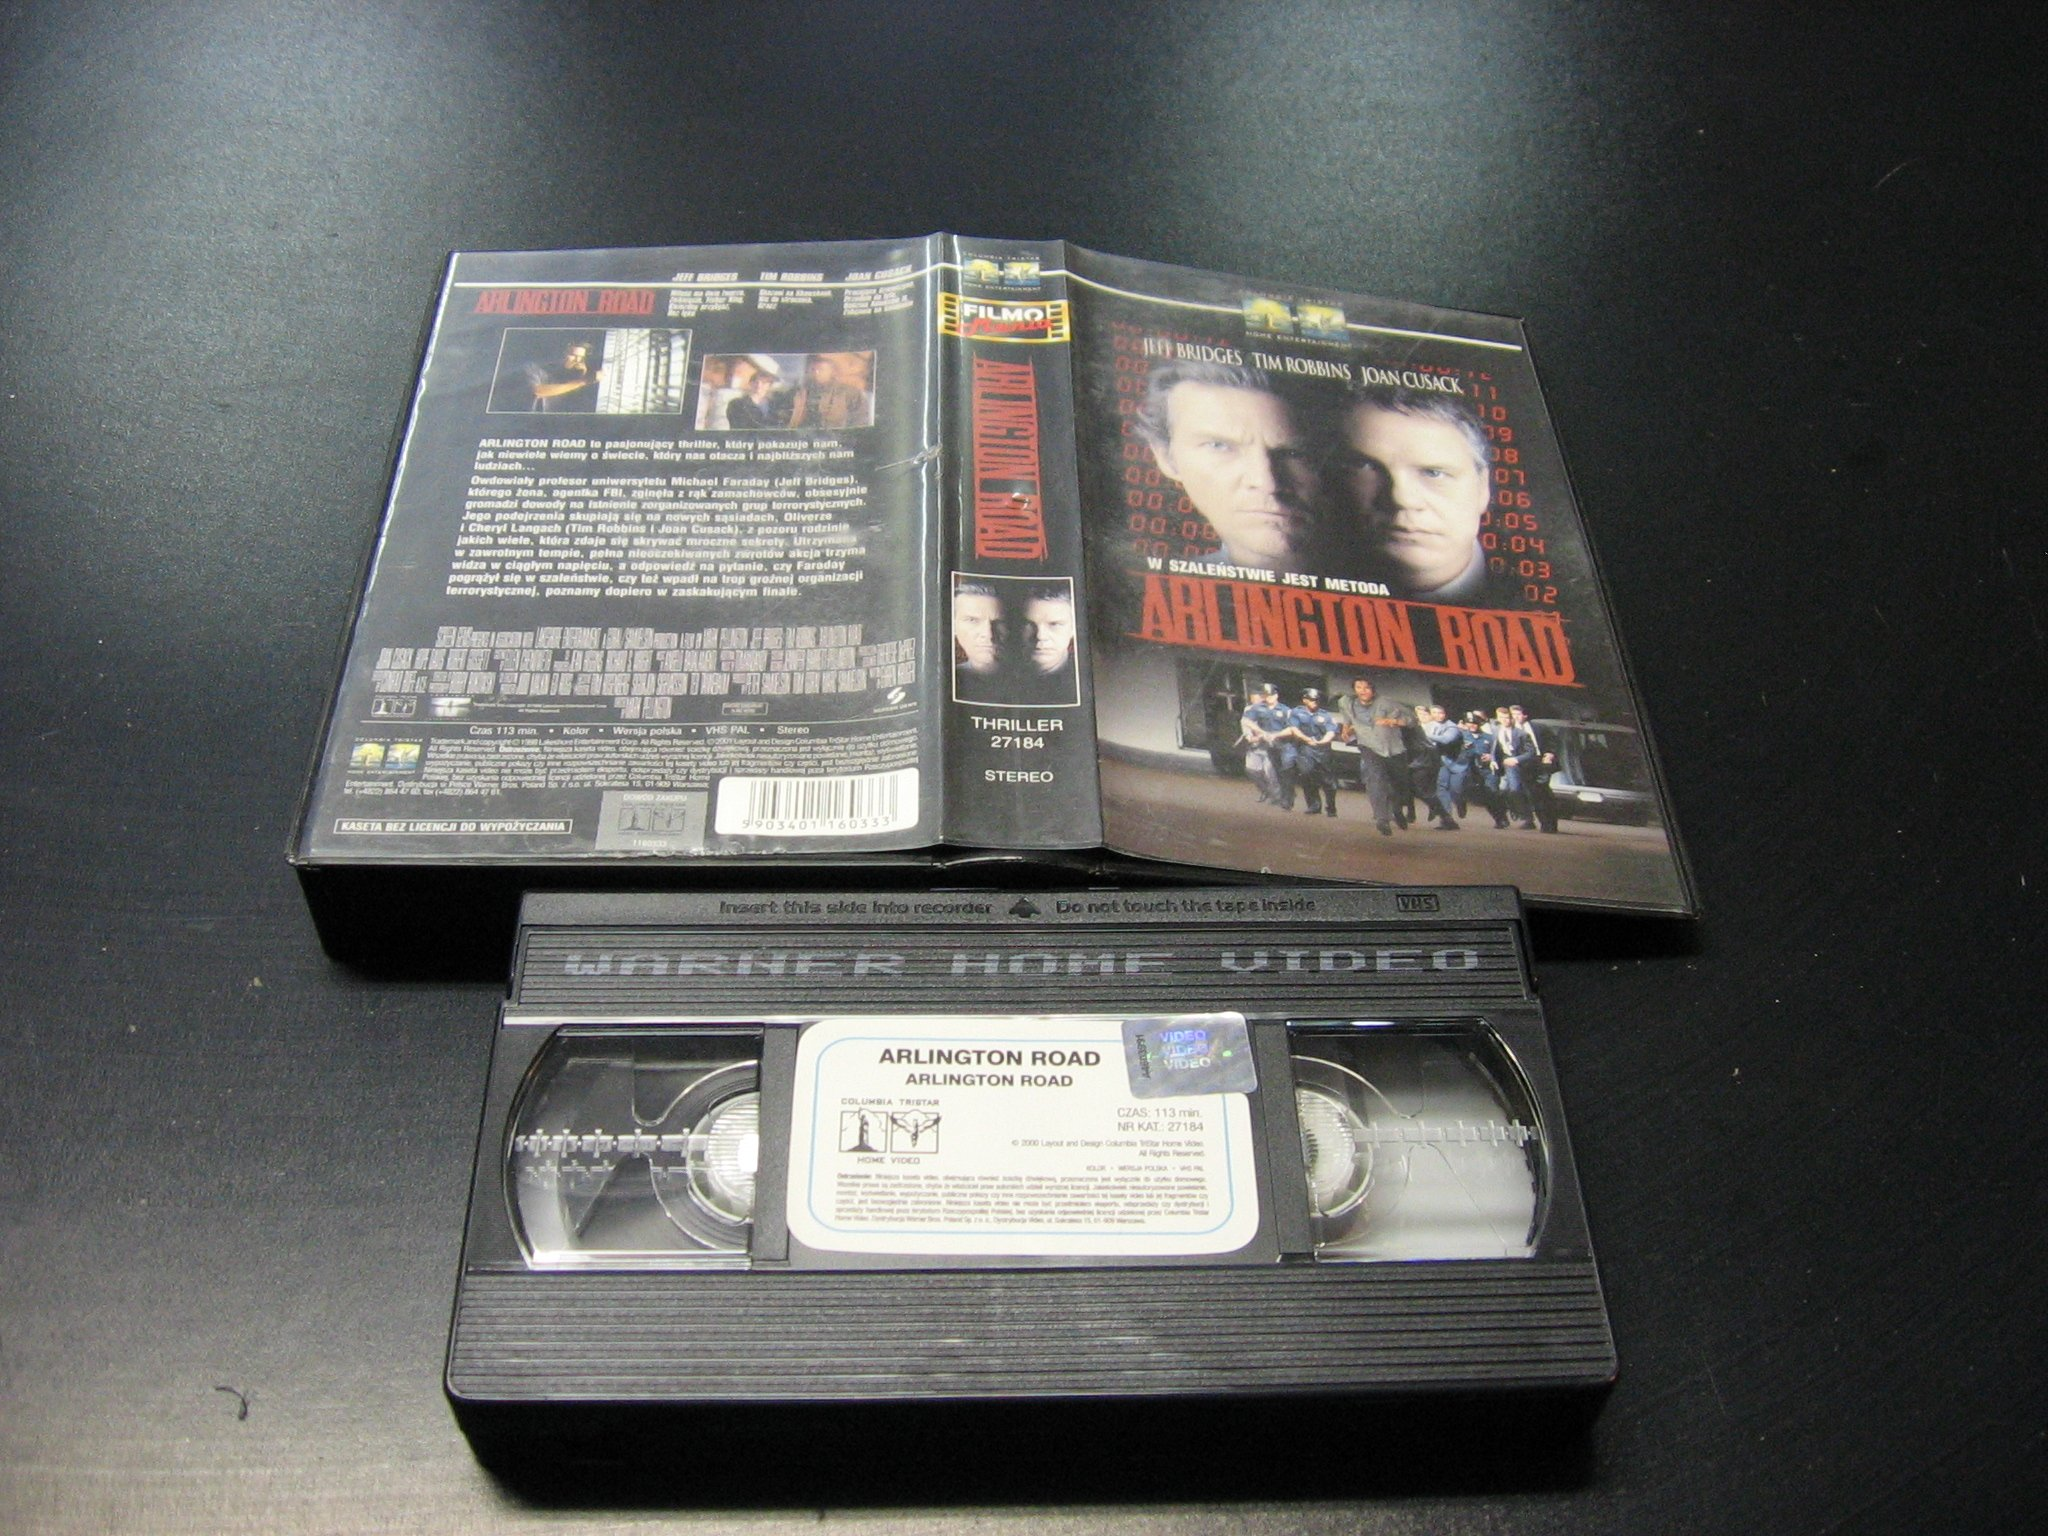 ARLINGTON ROAD - JEFF BRIDGES - JOAN CUSACK ```````````` VHS ```````````` Opole 0790 AlleOpole.pl